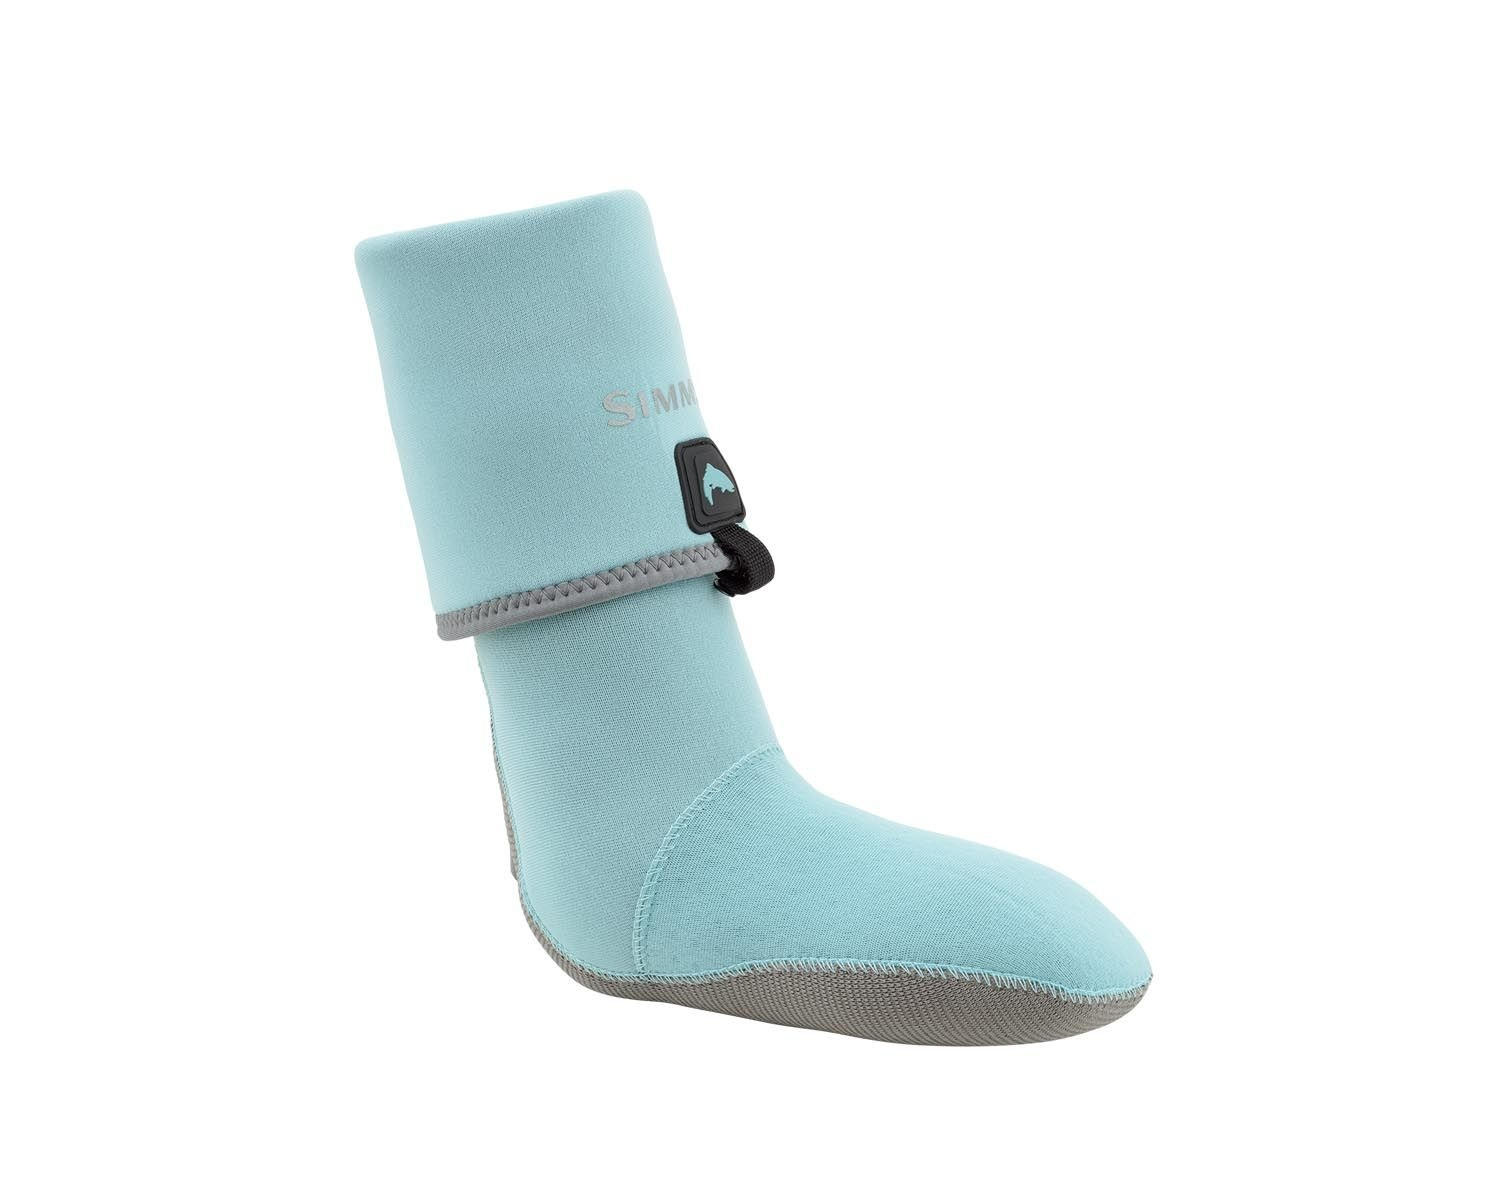 Simms Fishing Womens Guide Guard Socks